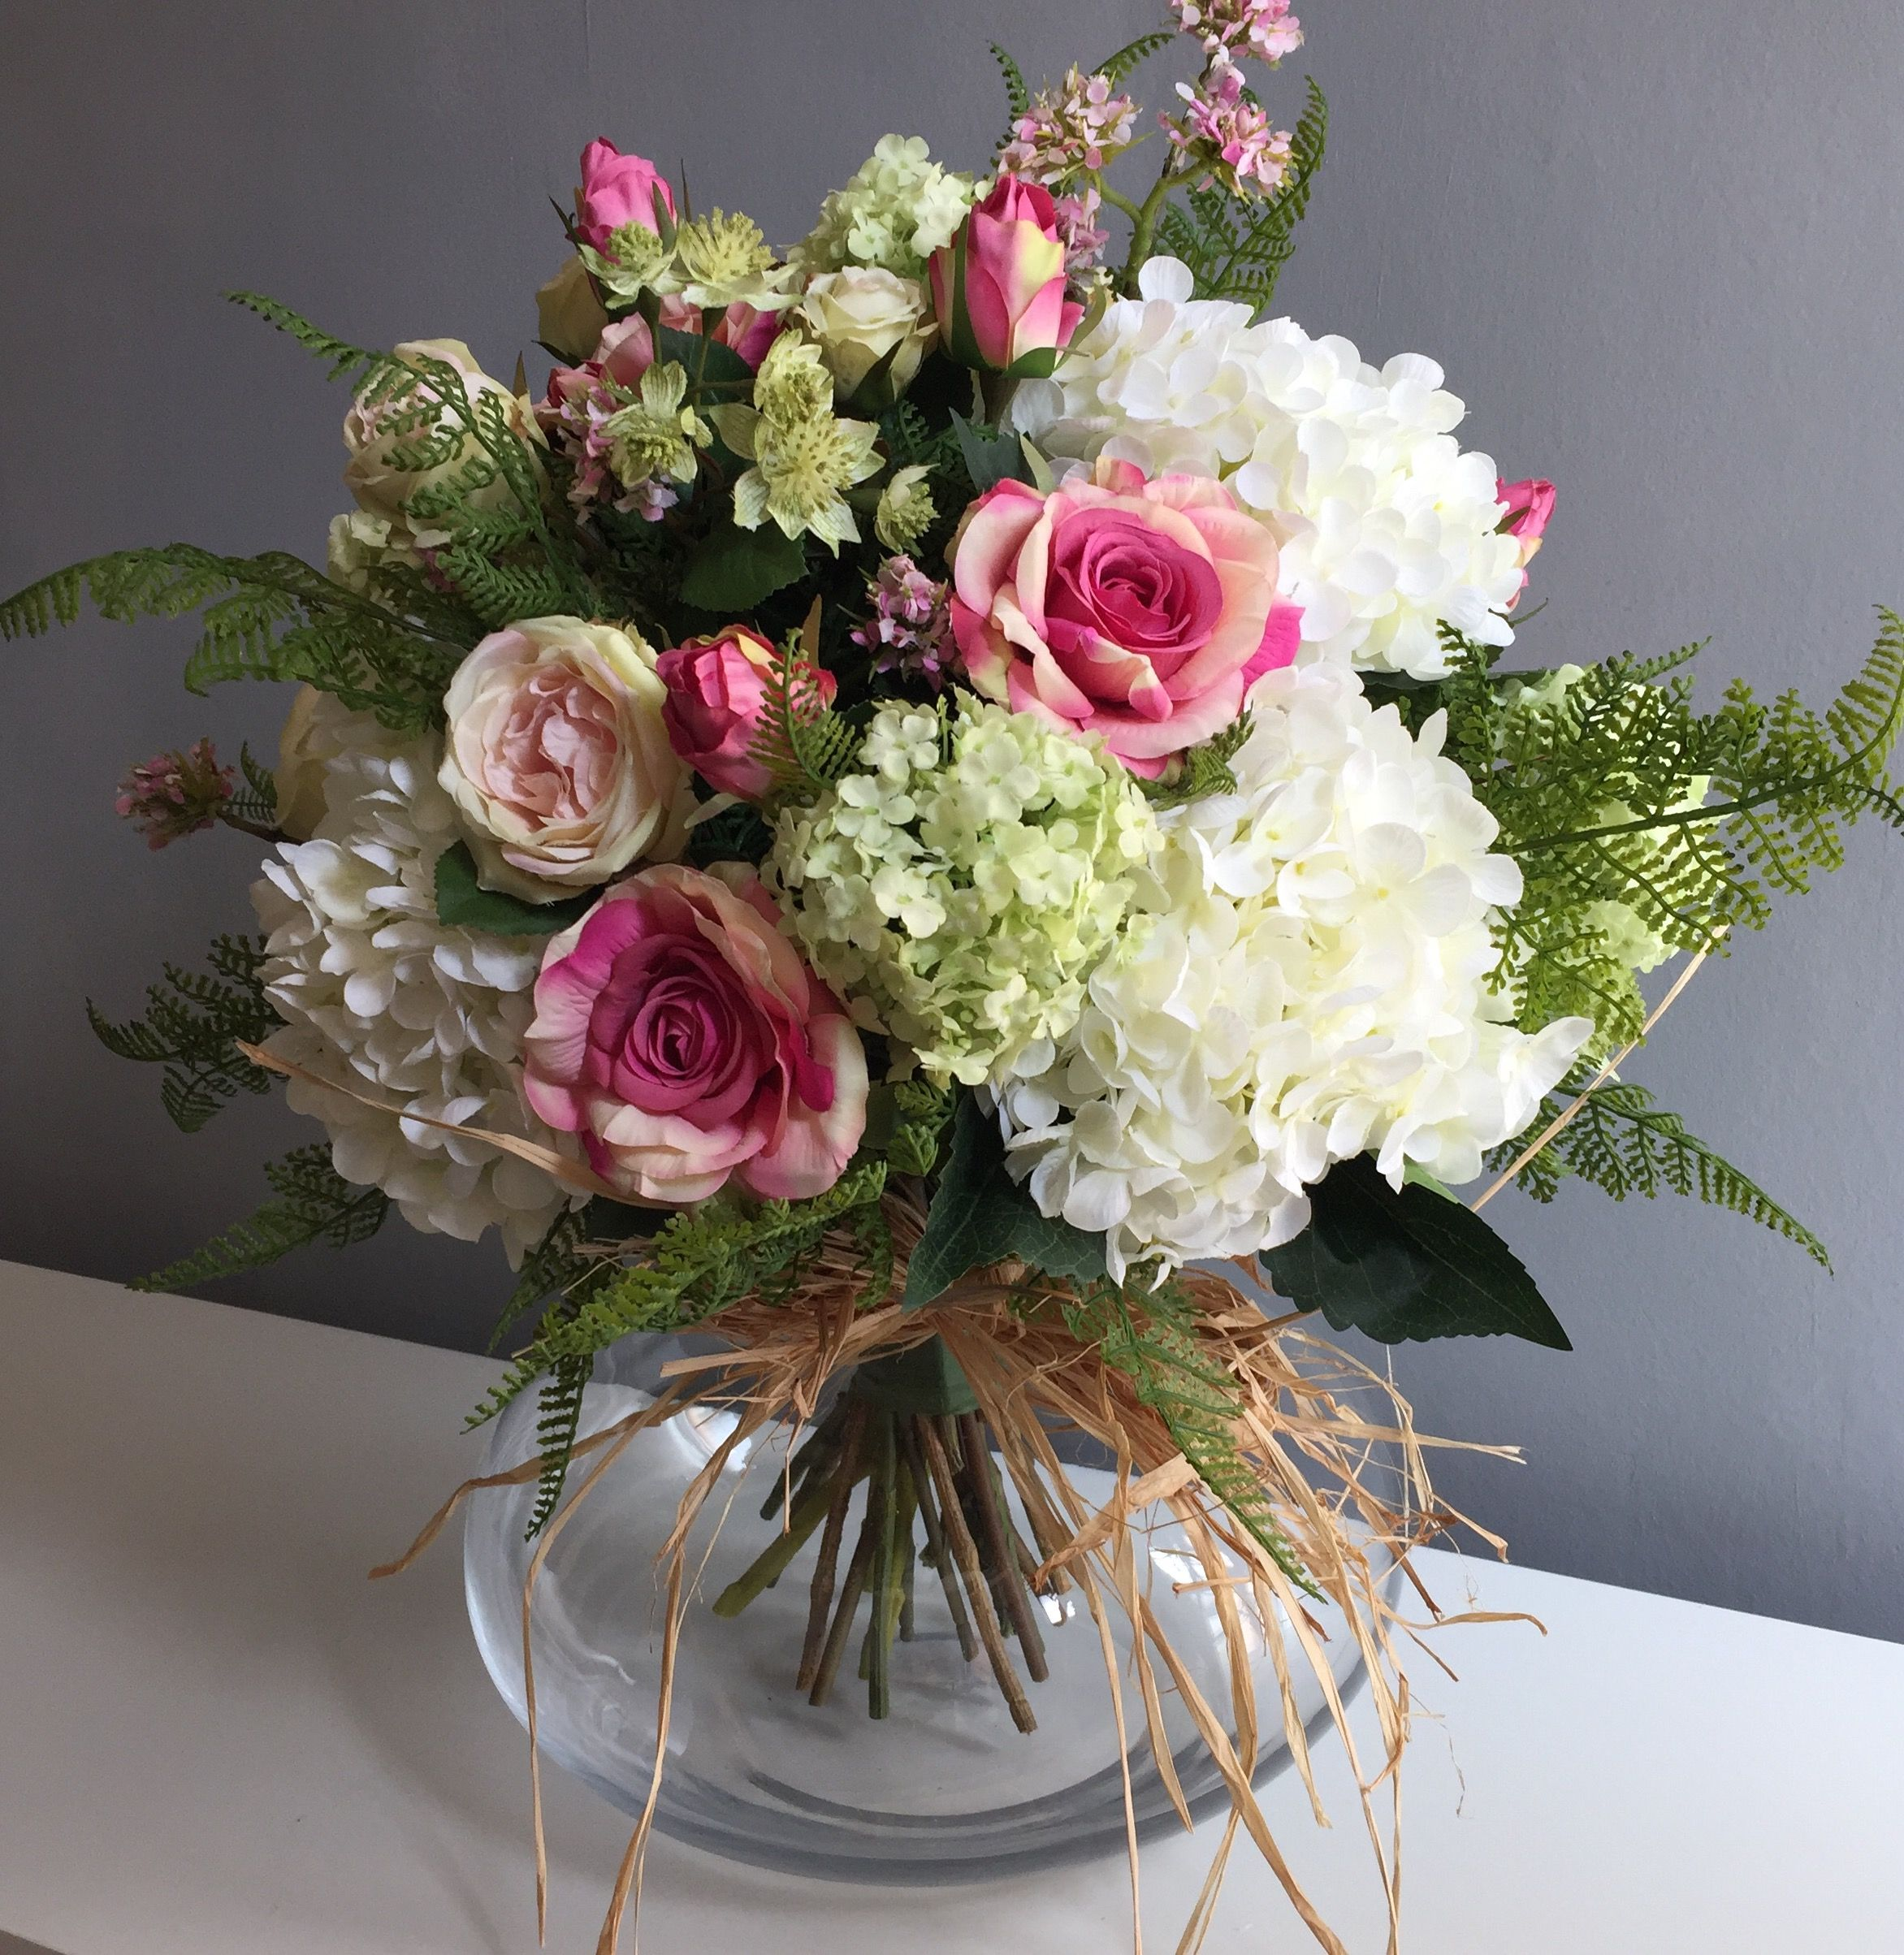 Artificial Flower Arrangement in Tones of Pink and White